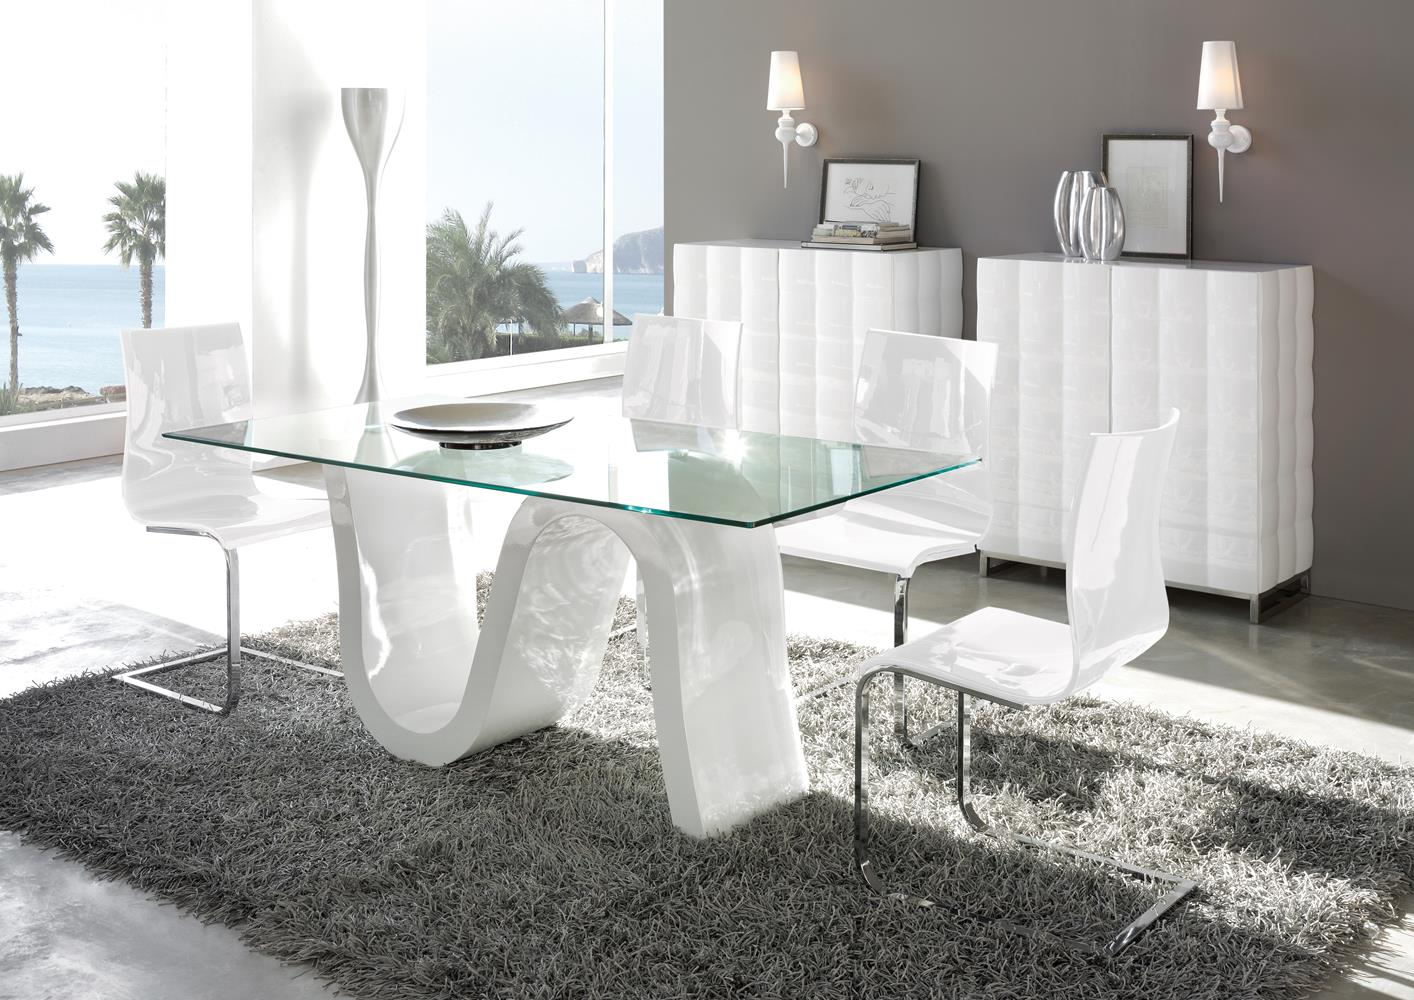 acheter votre table originale plateau verre chez simeuble. Black Bedroom Furniture Sets. Home Design Ideas